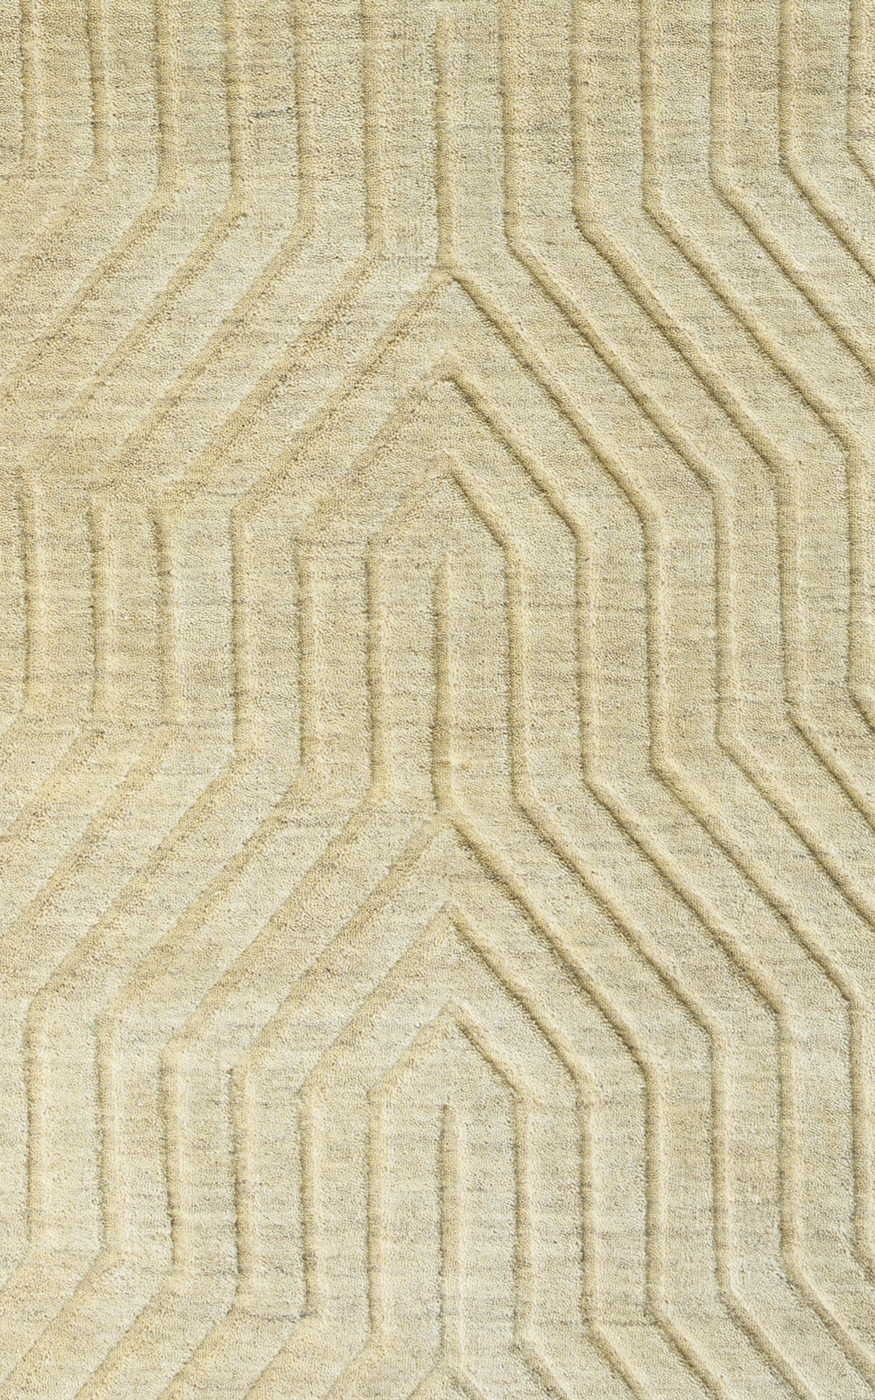 Technique Faded Ornamental Wool Area Rug In Amp Tan 9 X 12